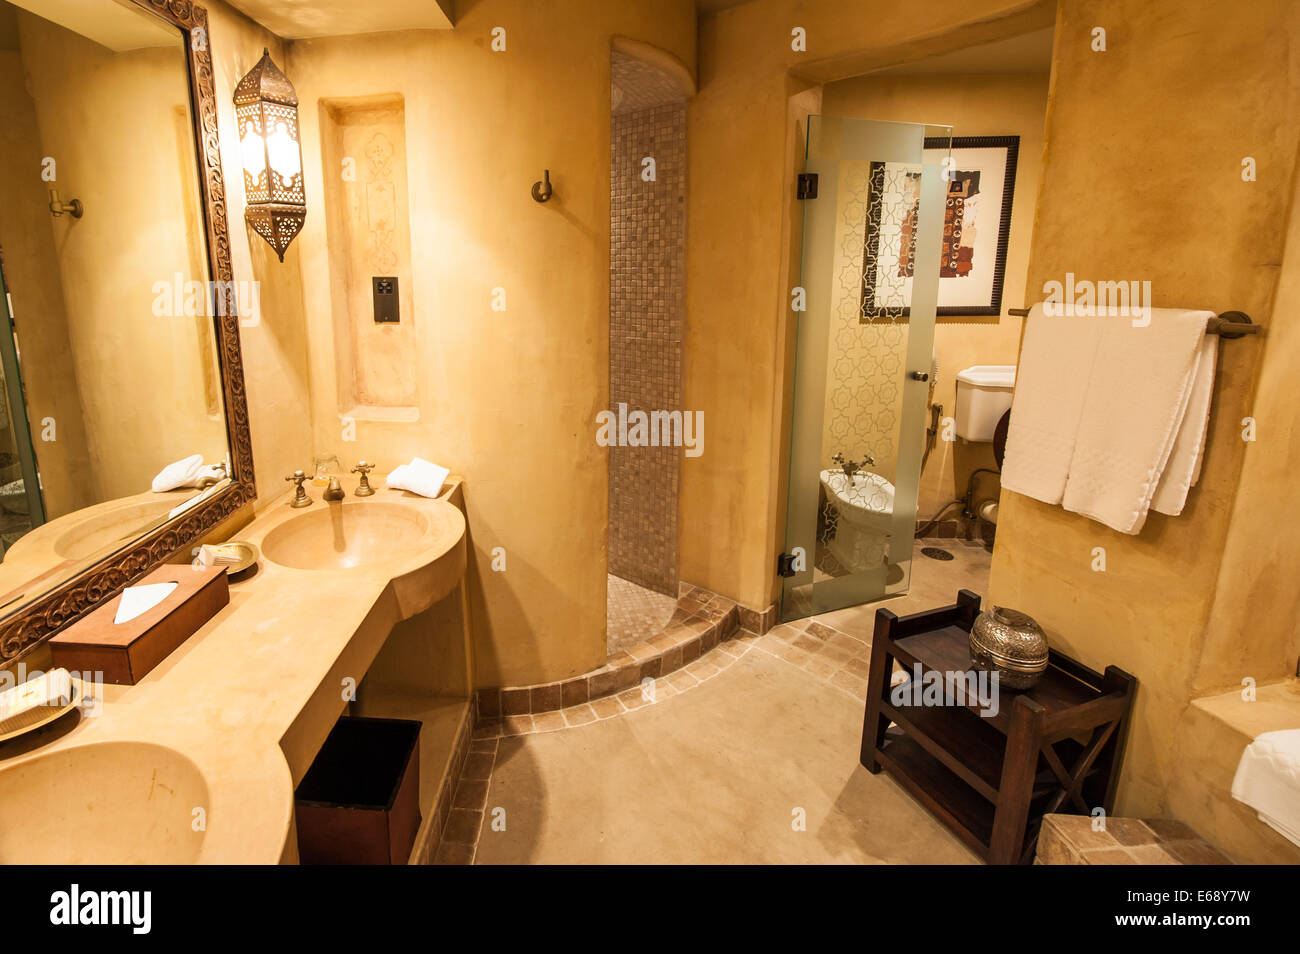 Spa bathroom suites - Guest Bath Bathroom Accommodations Room Suite At The Bab Al Shams Desert Resort Spa